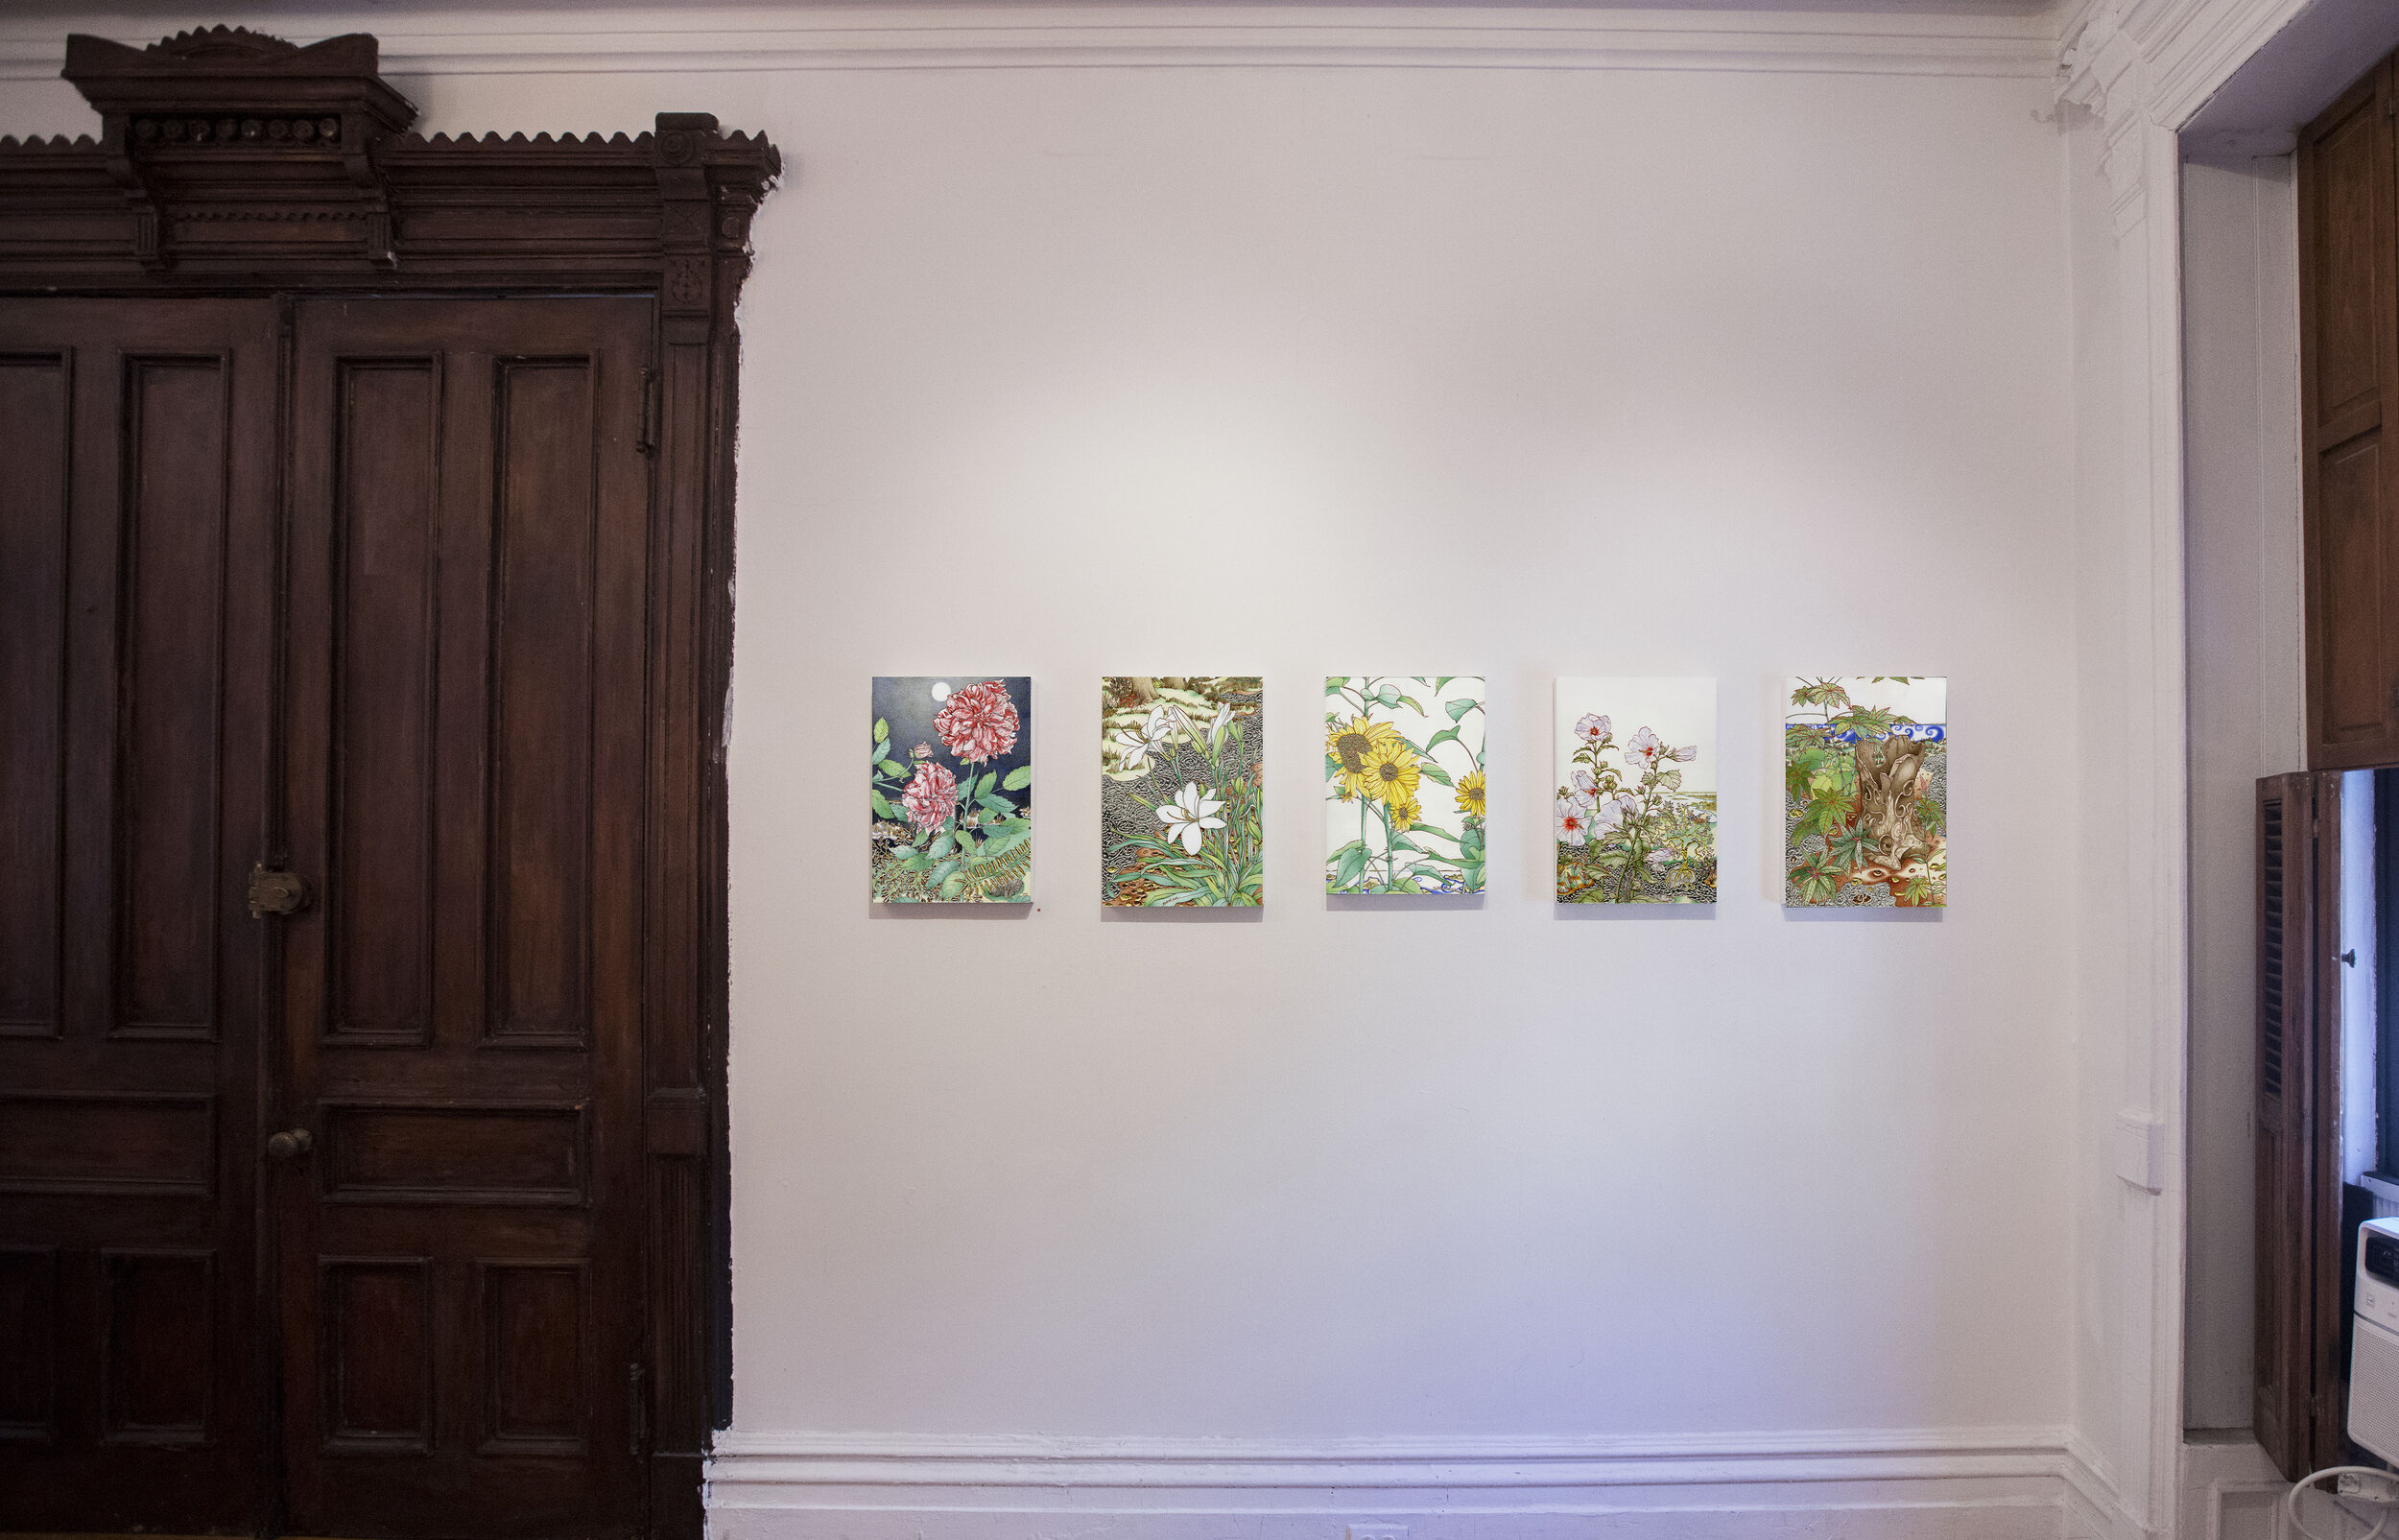 Micheal Eade: past is present is future  installation view. Photograph by Nadia Peichao Lin. © Micheal Eade, courtesy Fou Gallery.